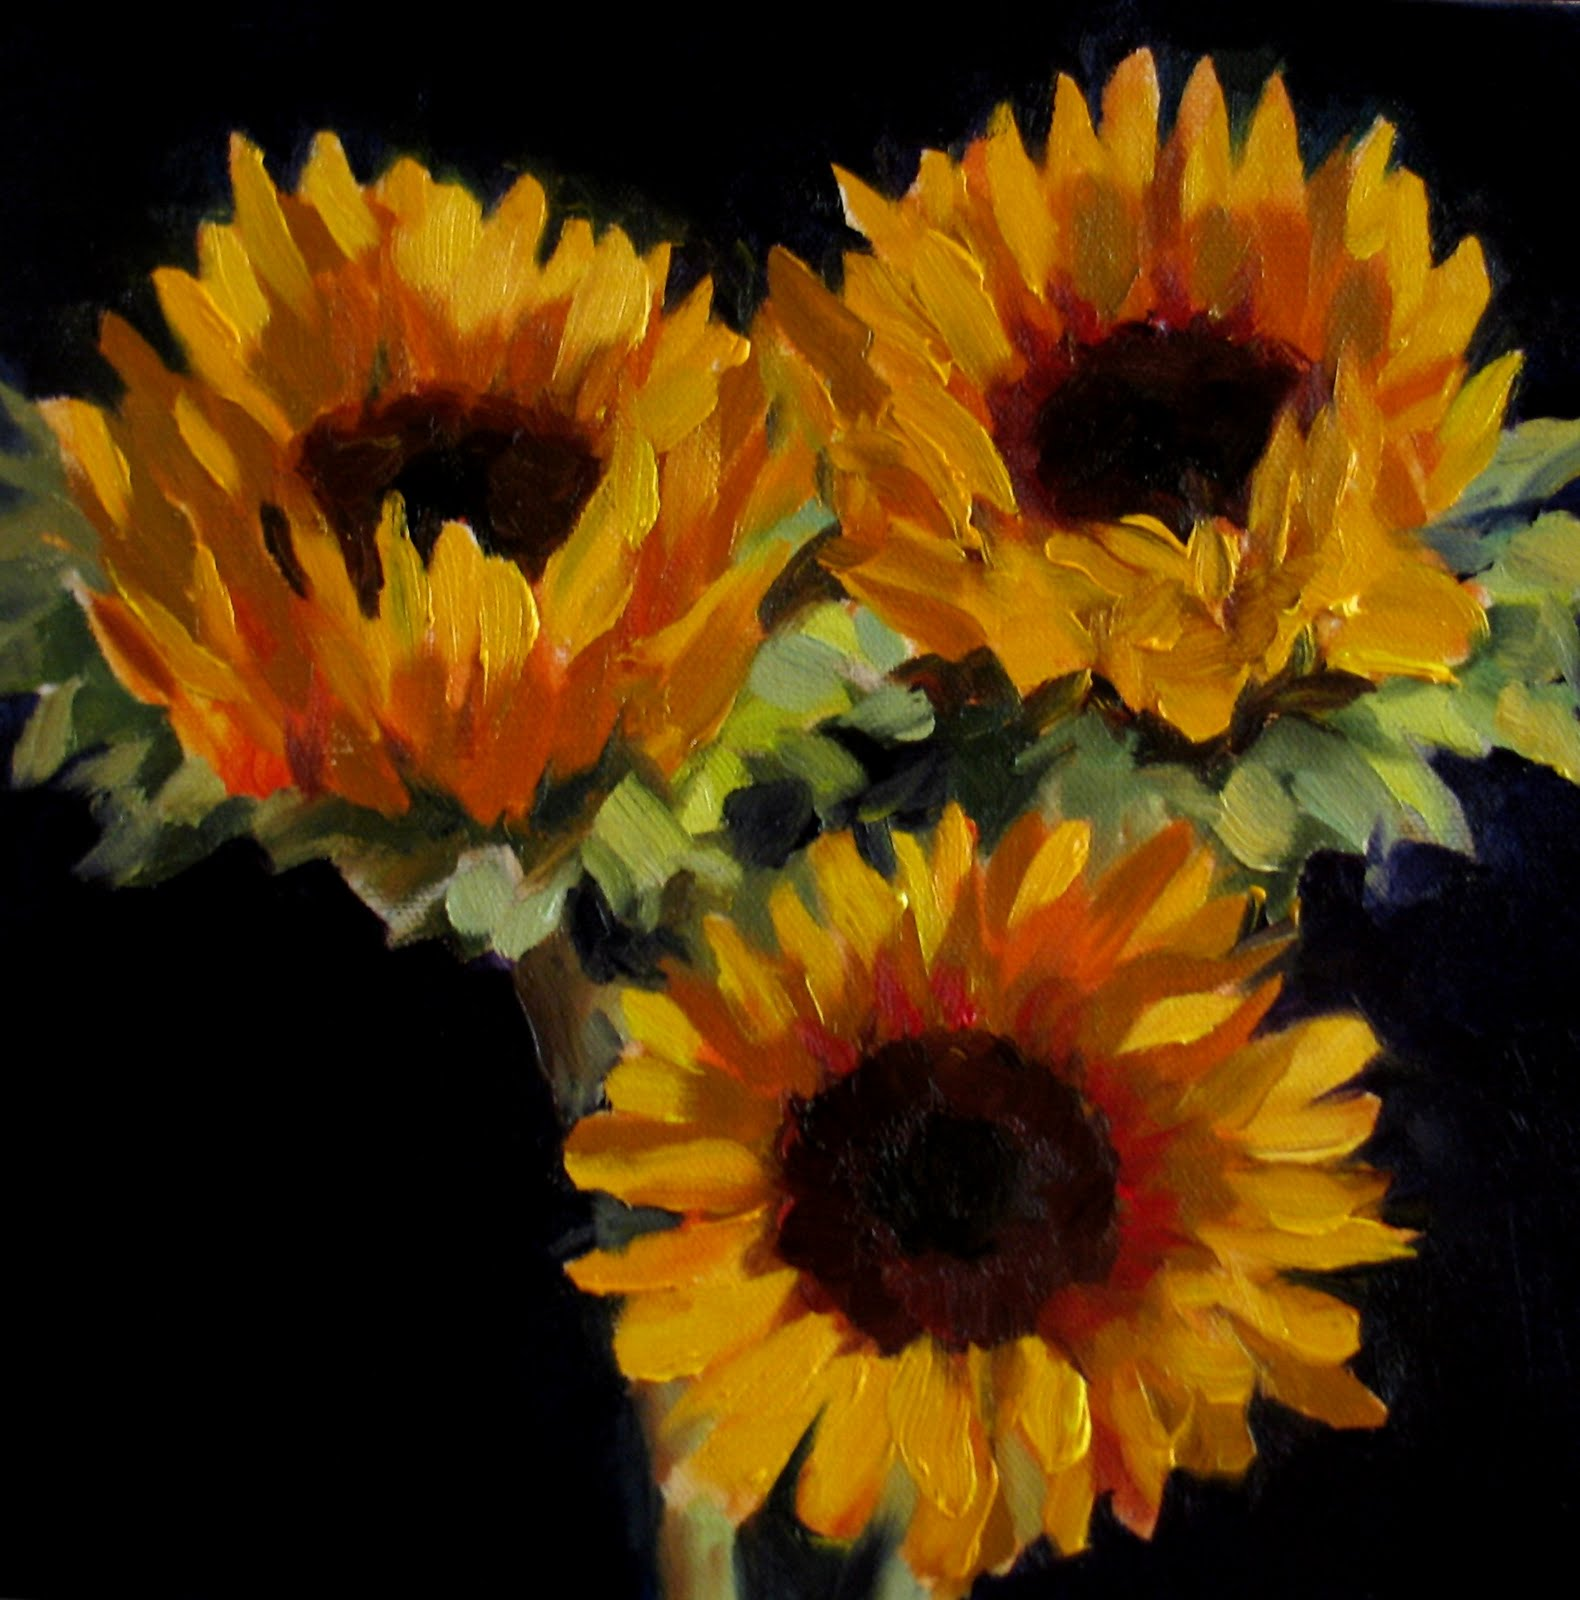 One Stroke Painting Sunflowers http://nelseverydaypainting.blogspot.com/2010/09/sunflowers-on-dark.html